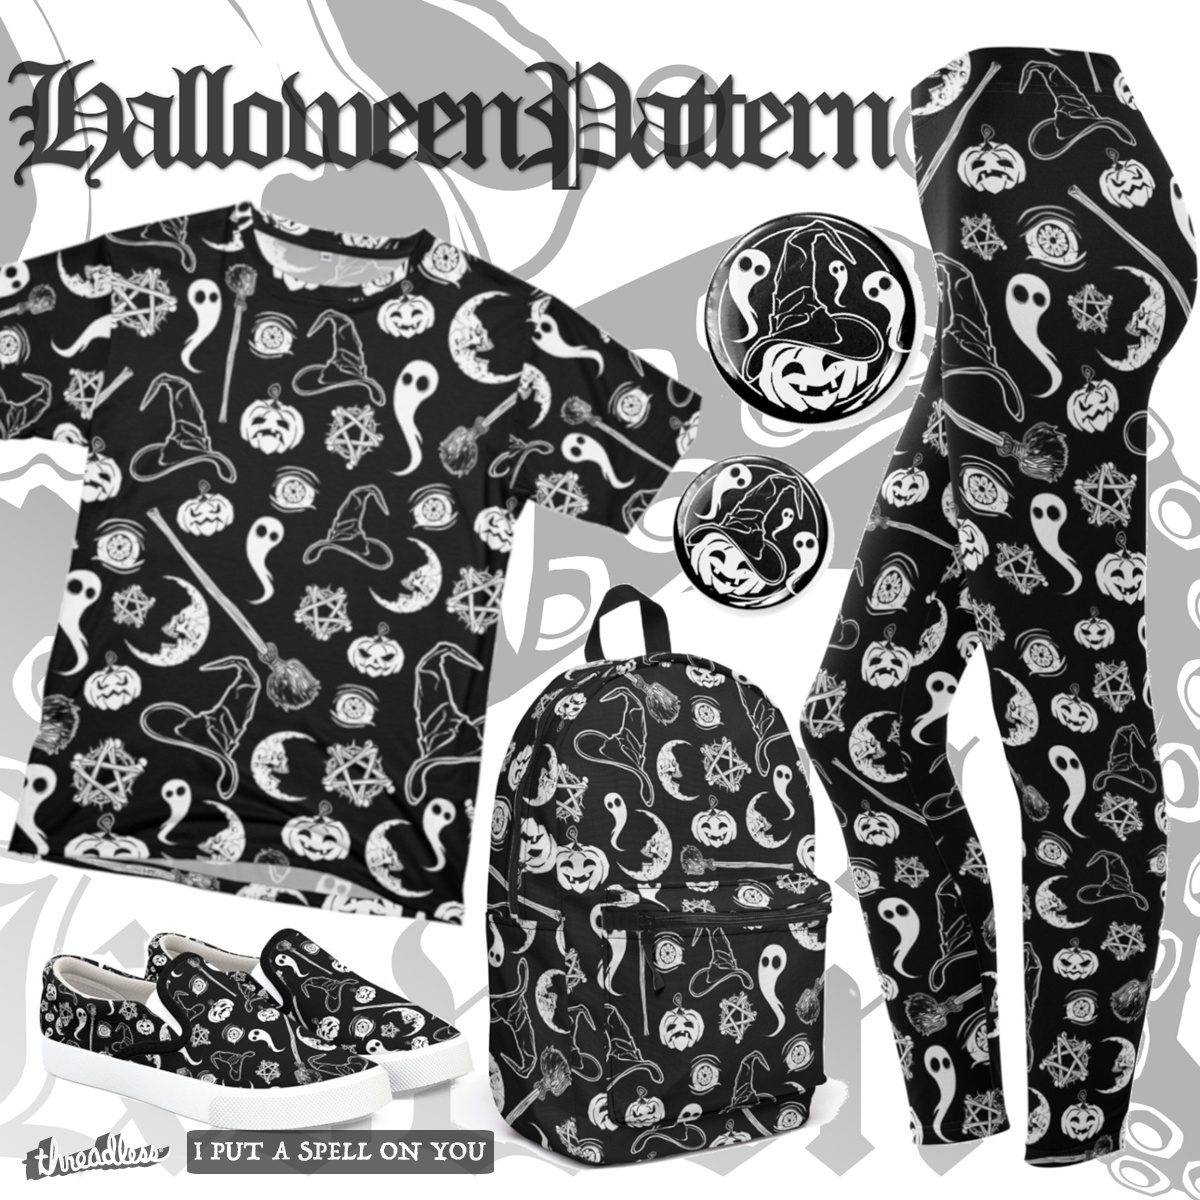 The Halloween Pattern, a cool t-shirt design